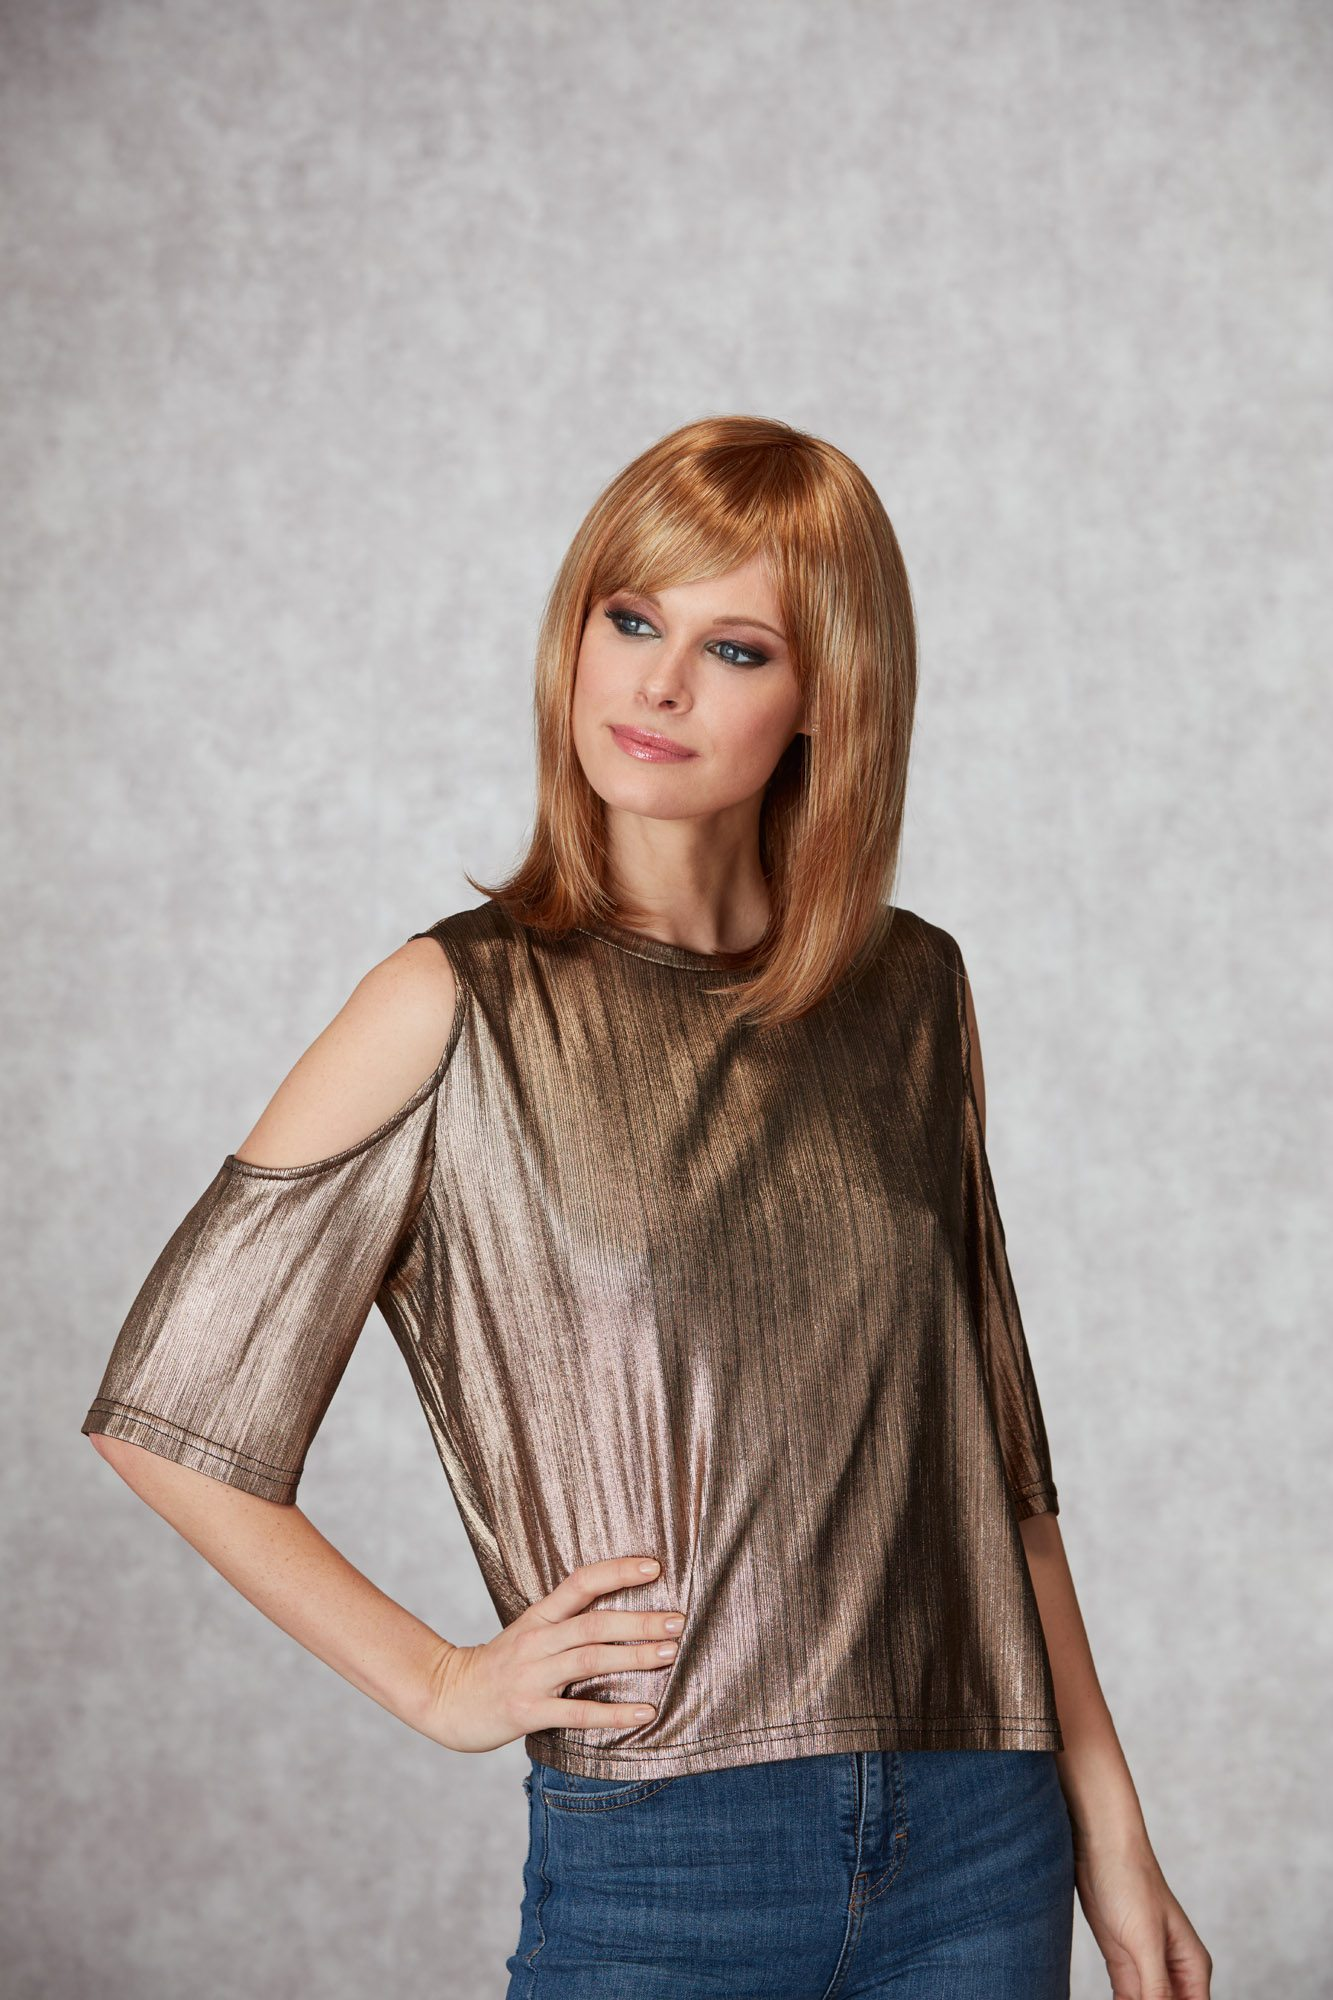 Affair Wig Ellen Wille Hair Society Collection - image Everlasting_G29_1472 on https://purewigs.com